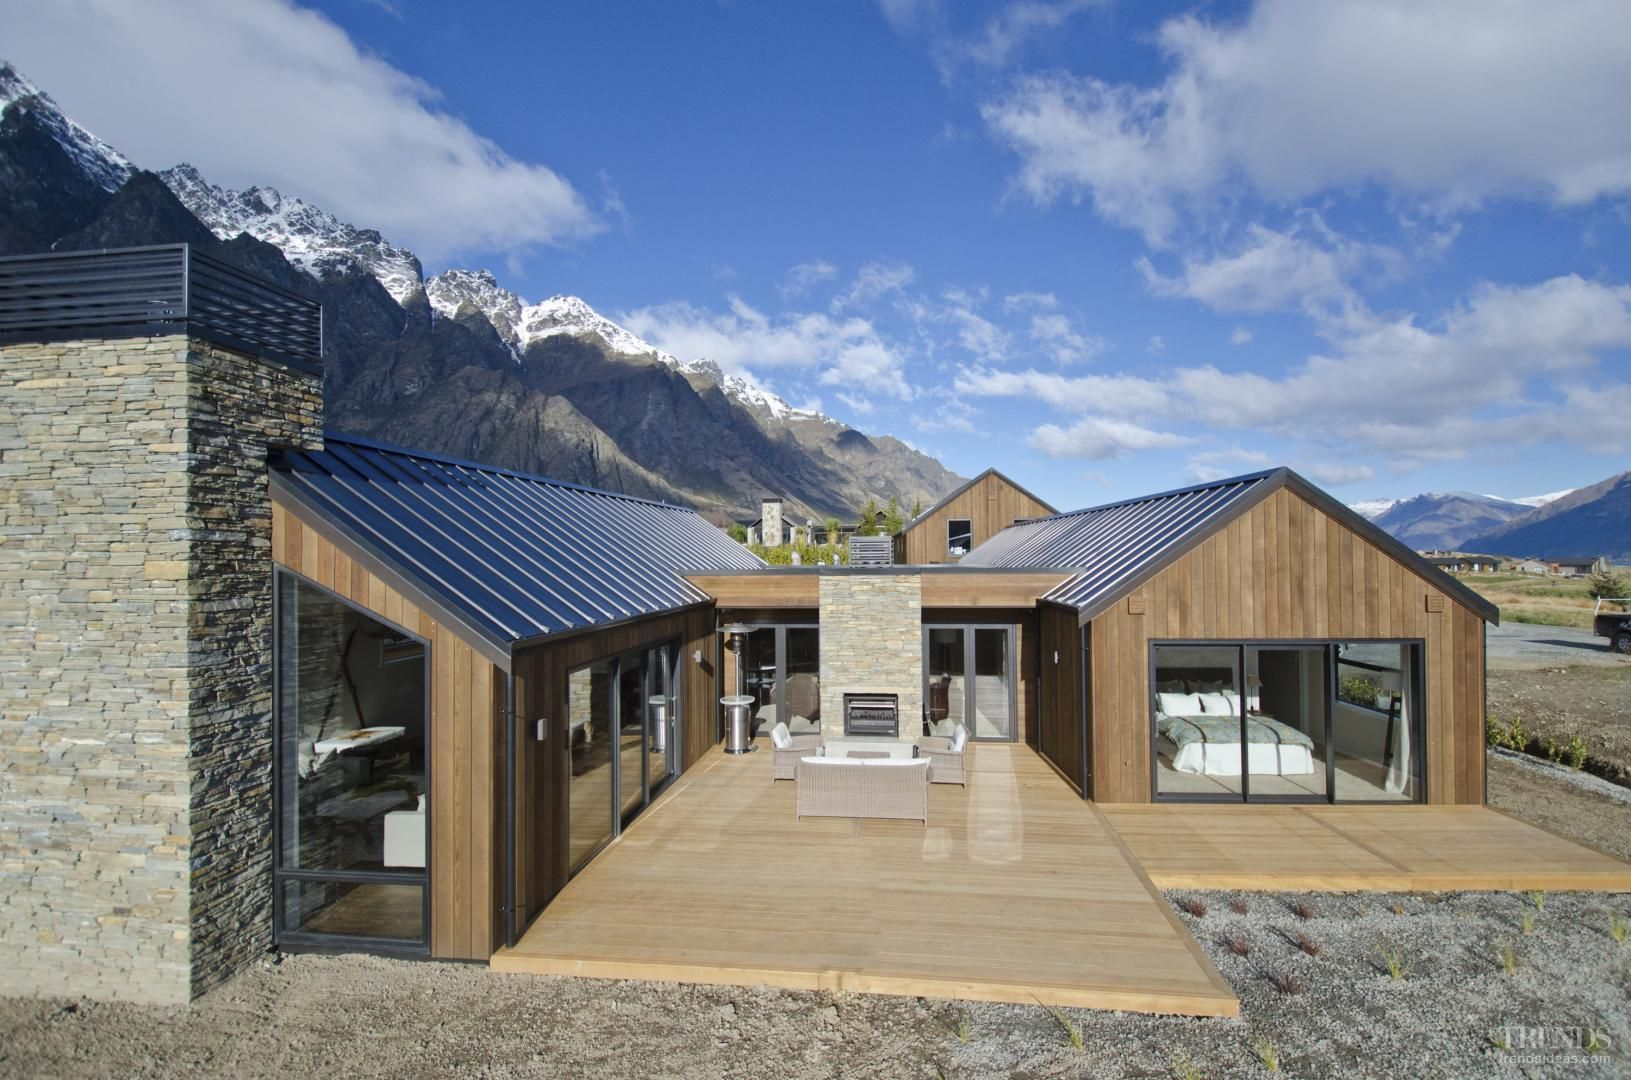 David reid homes show home in queenstown house design for Contemporary house designs nz